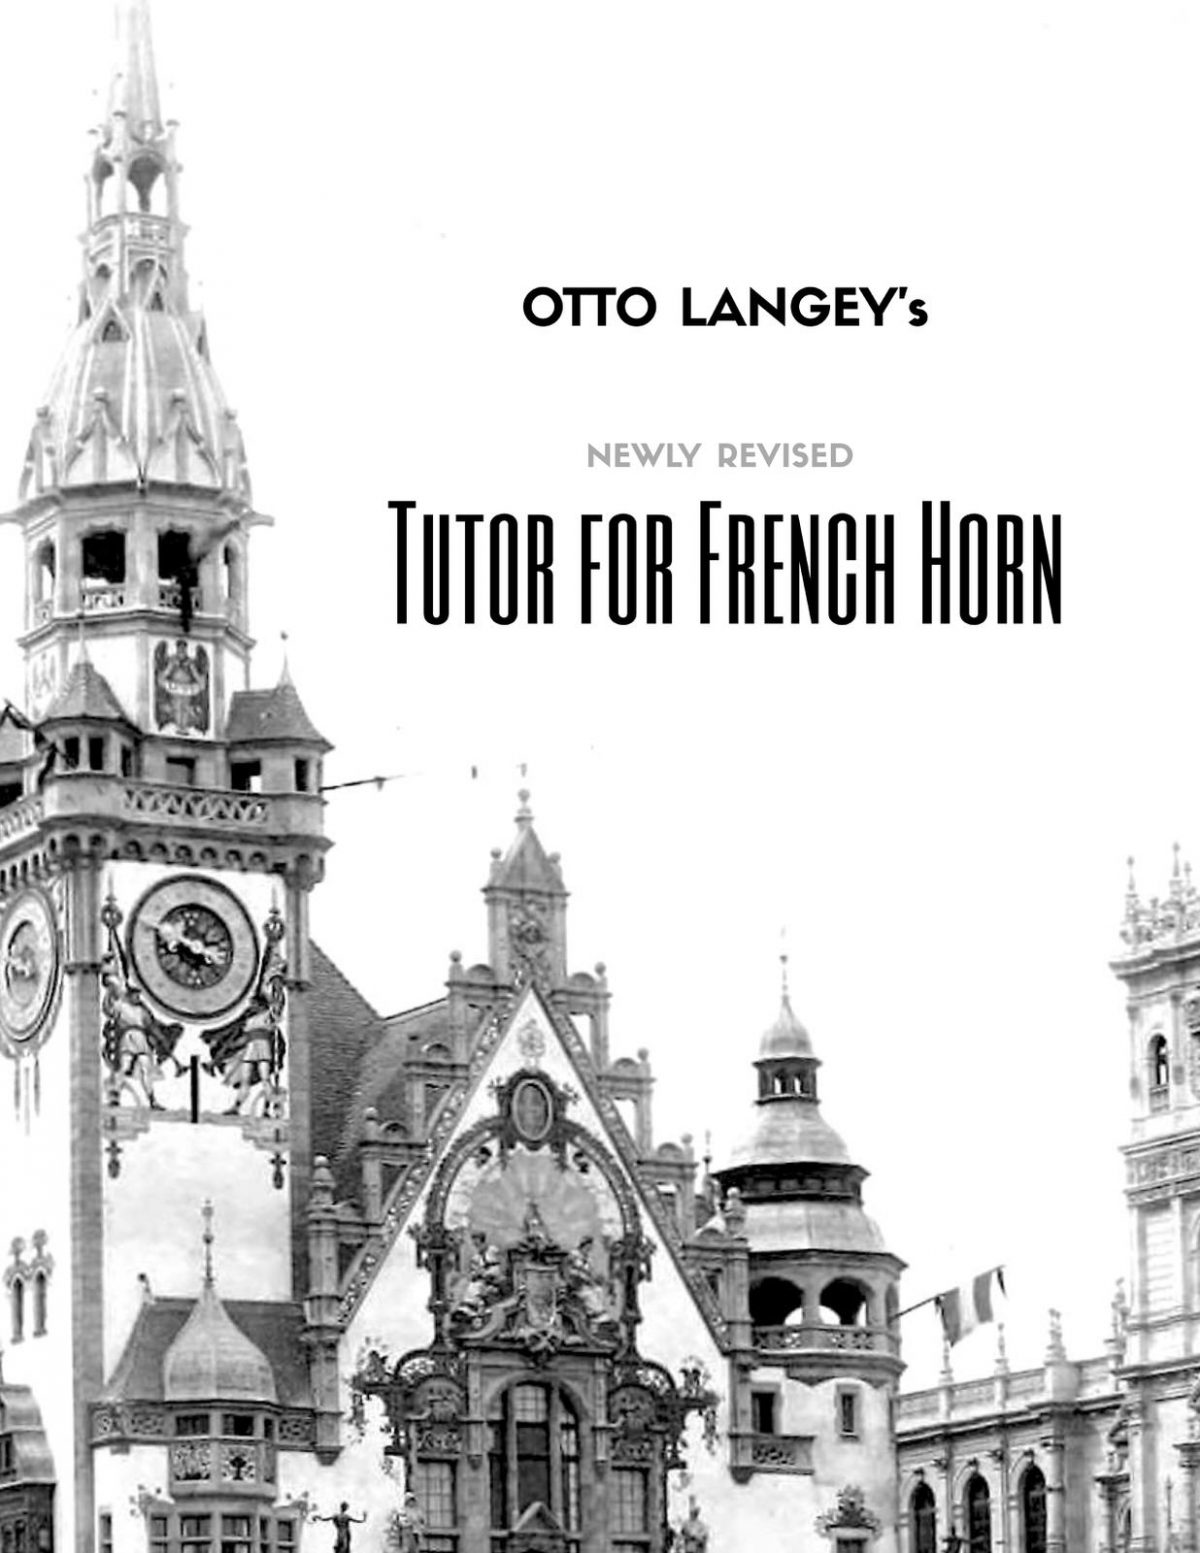 Langey, Tutor for French Horn-p001